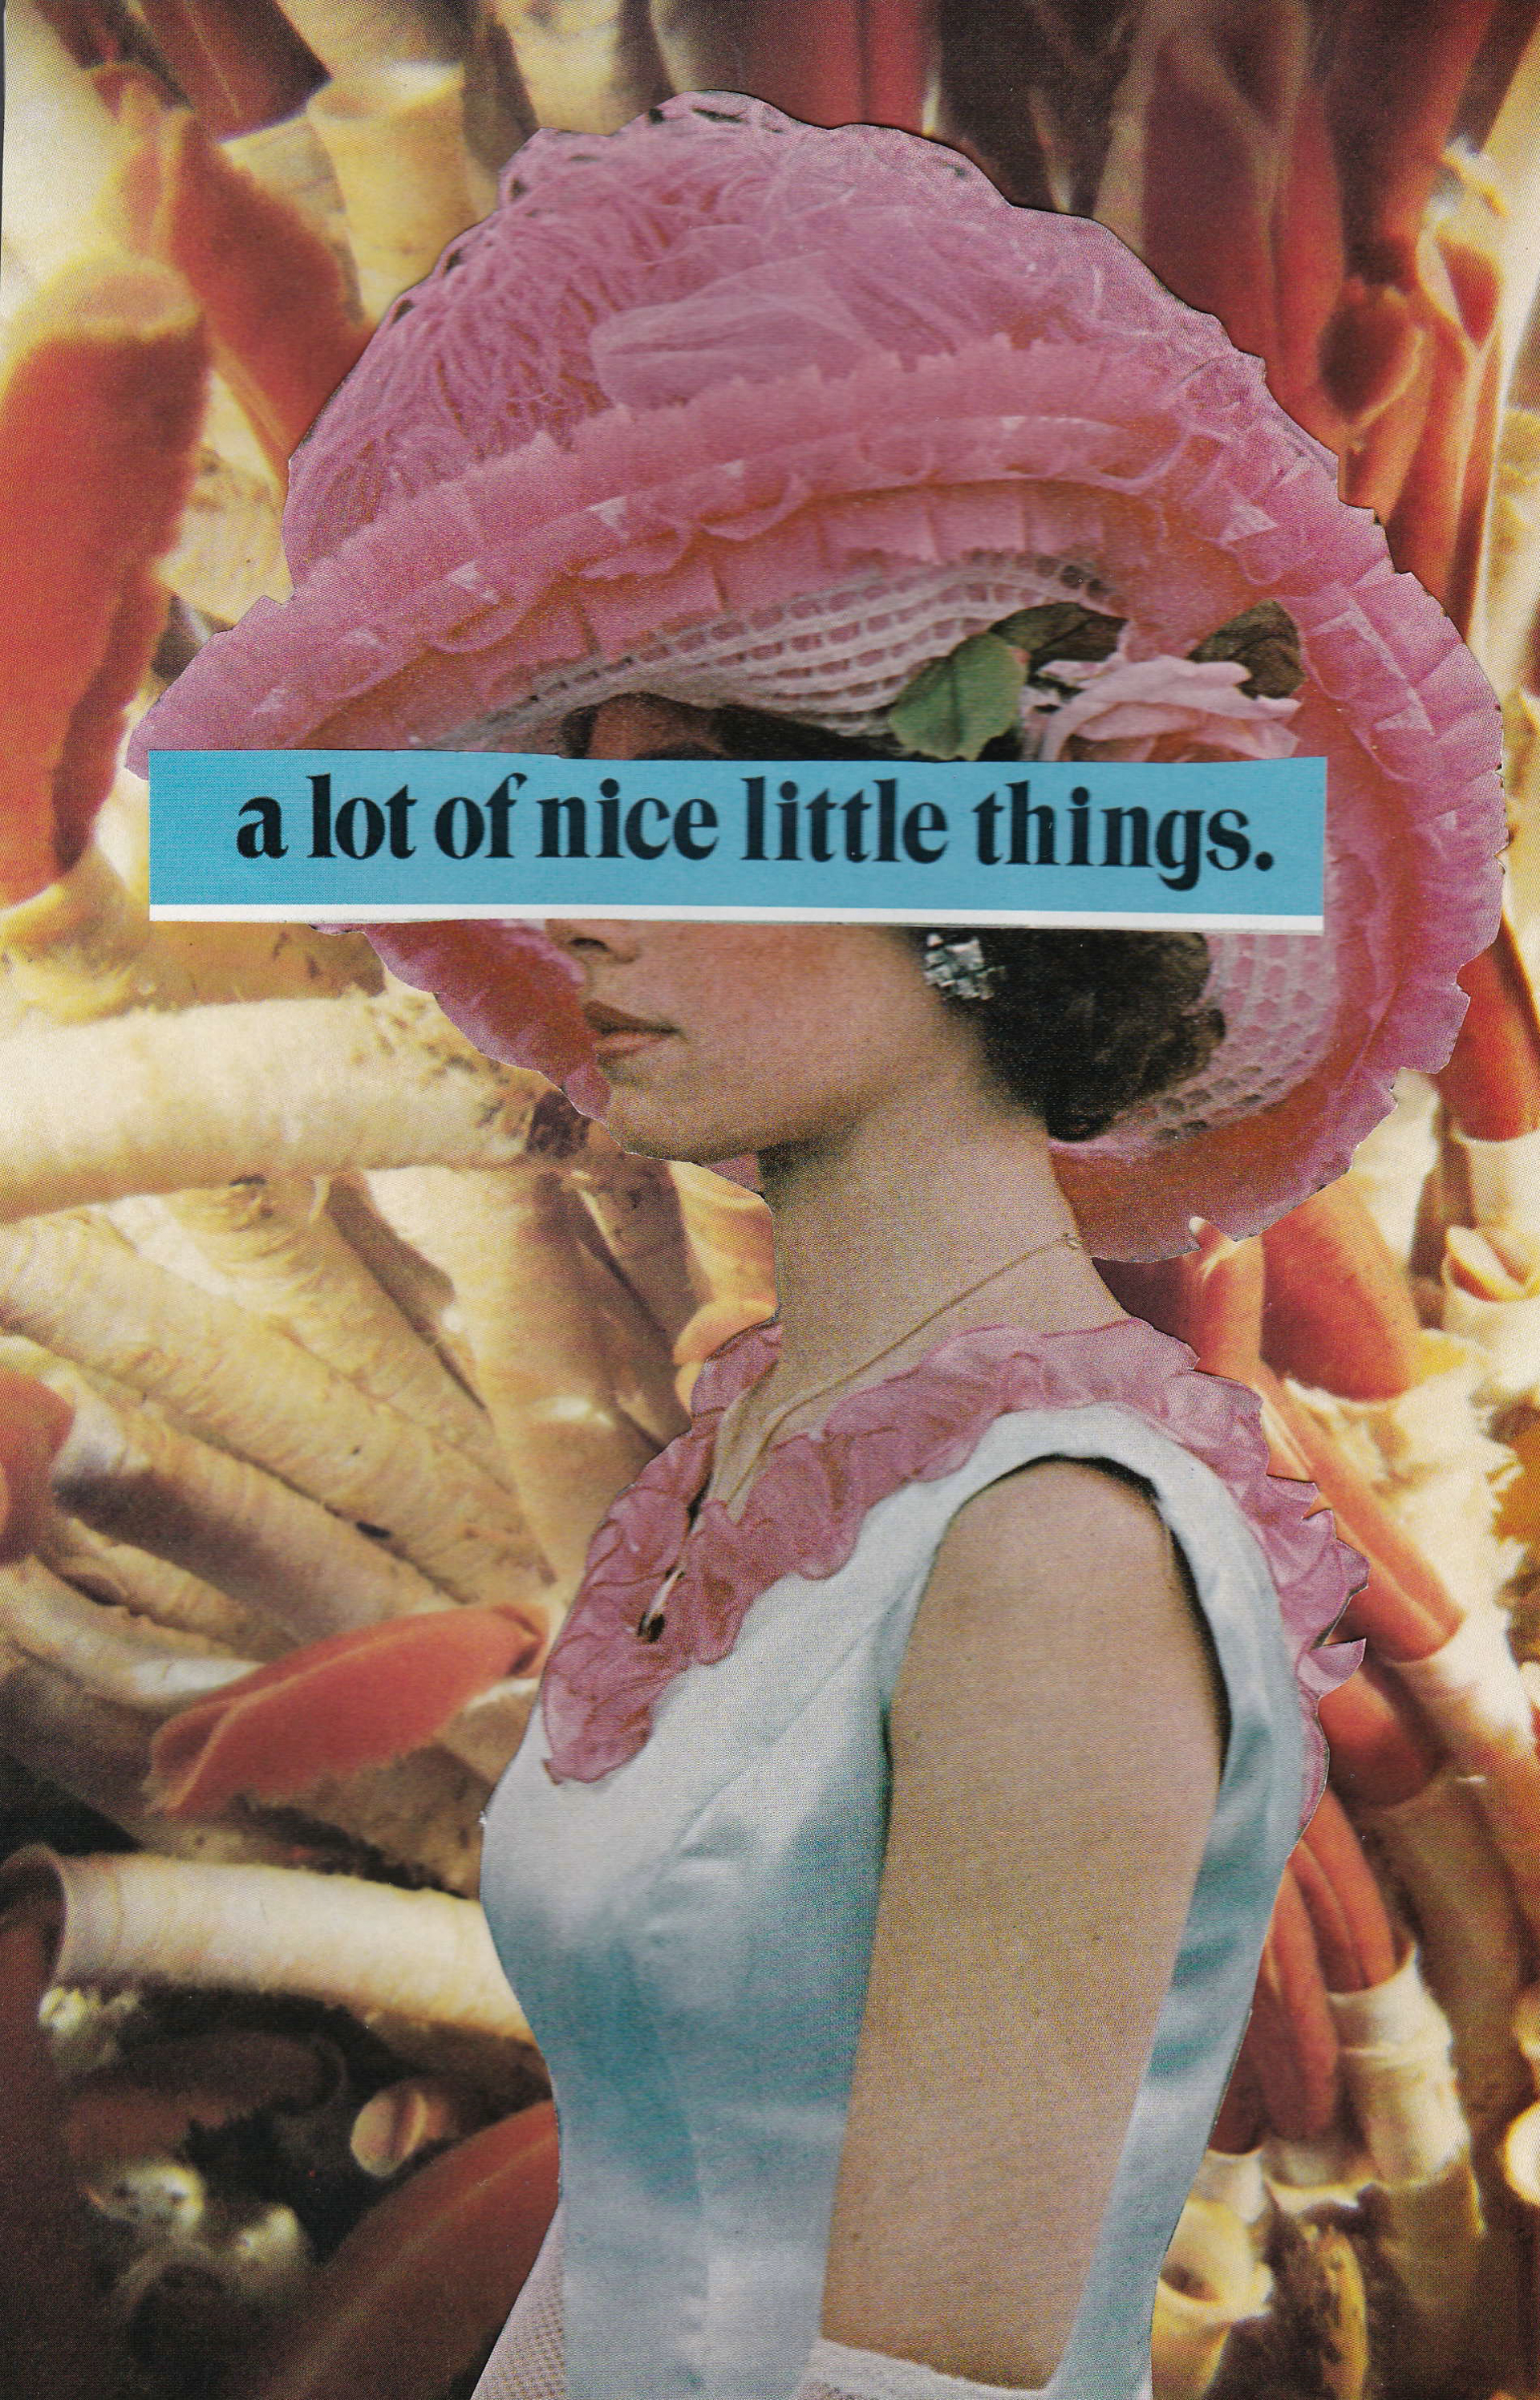 A LOT OF NICE LITTLE THINGS  BY CHARLOTTE JACKMAN